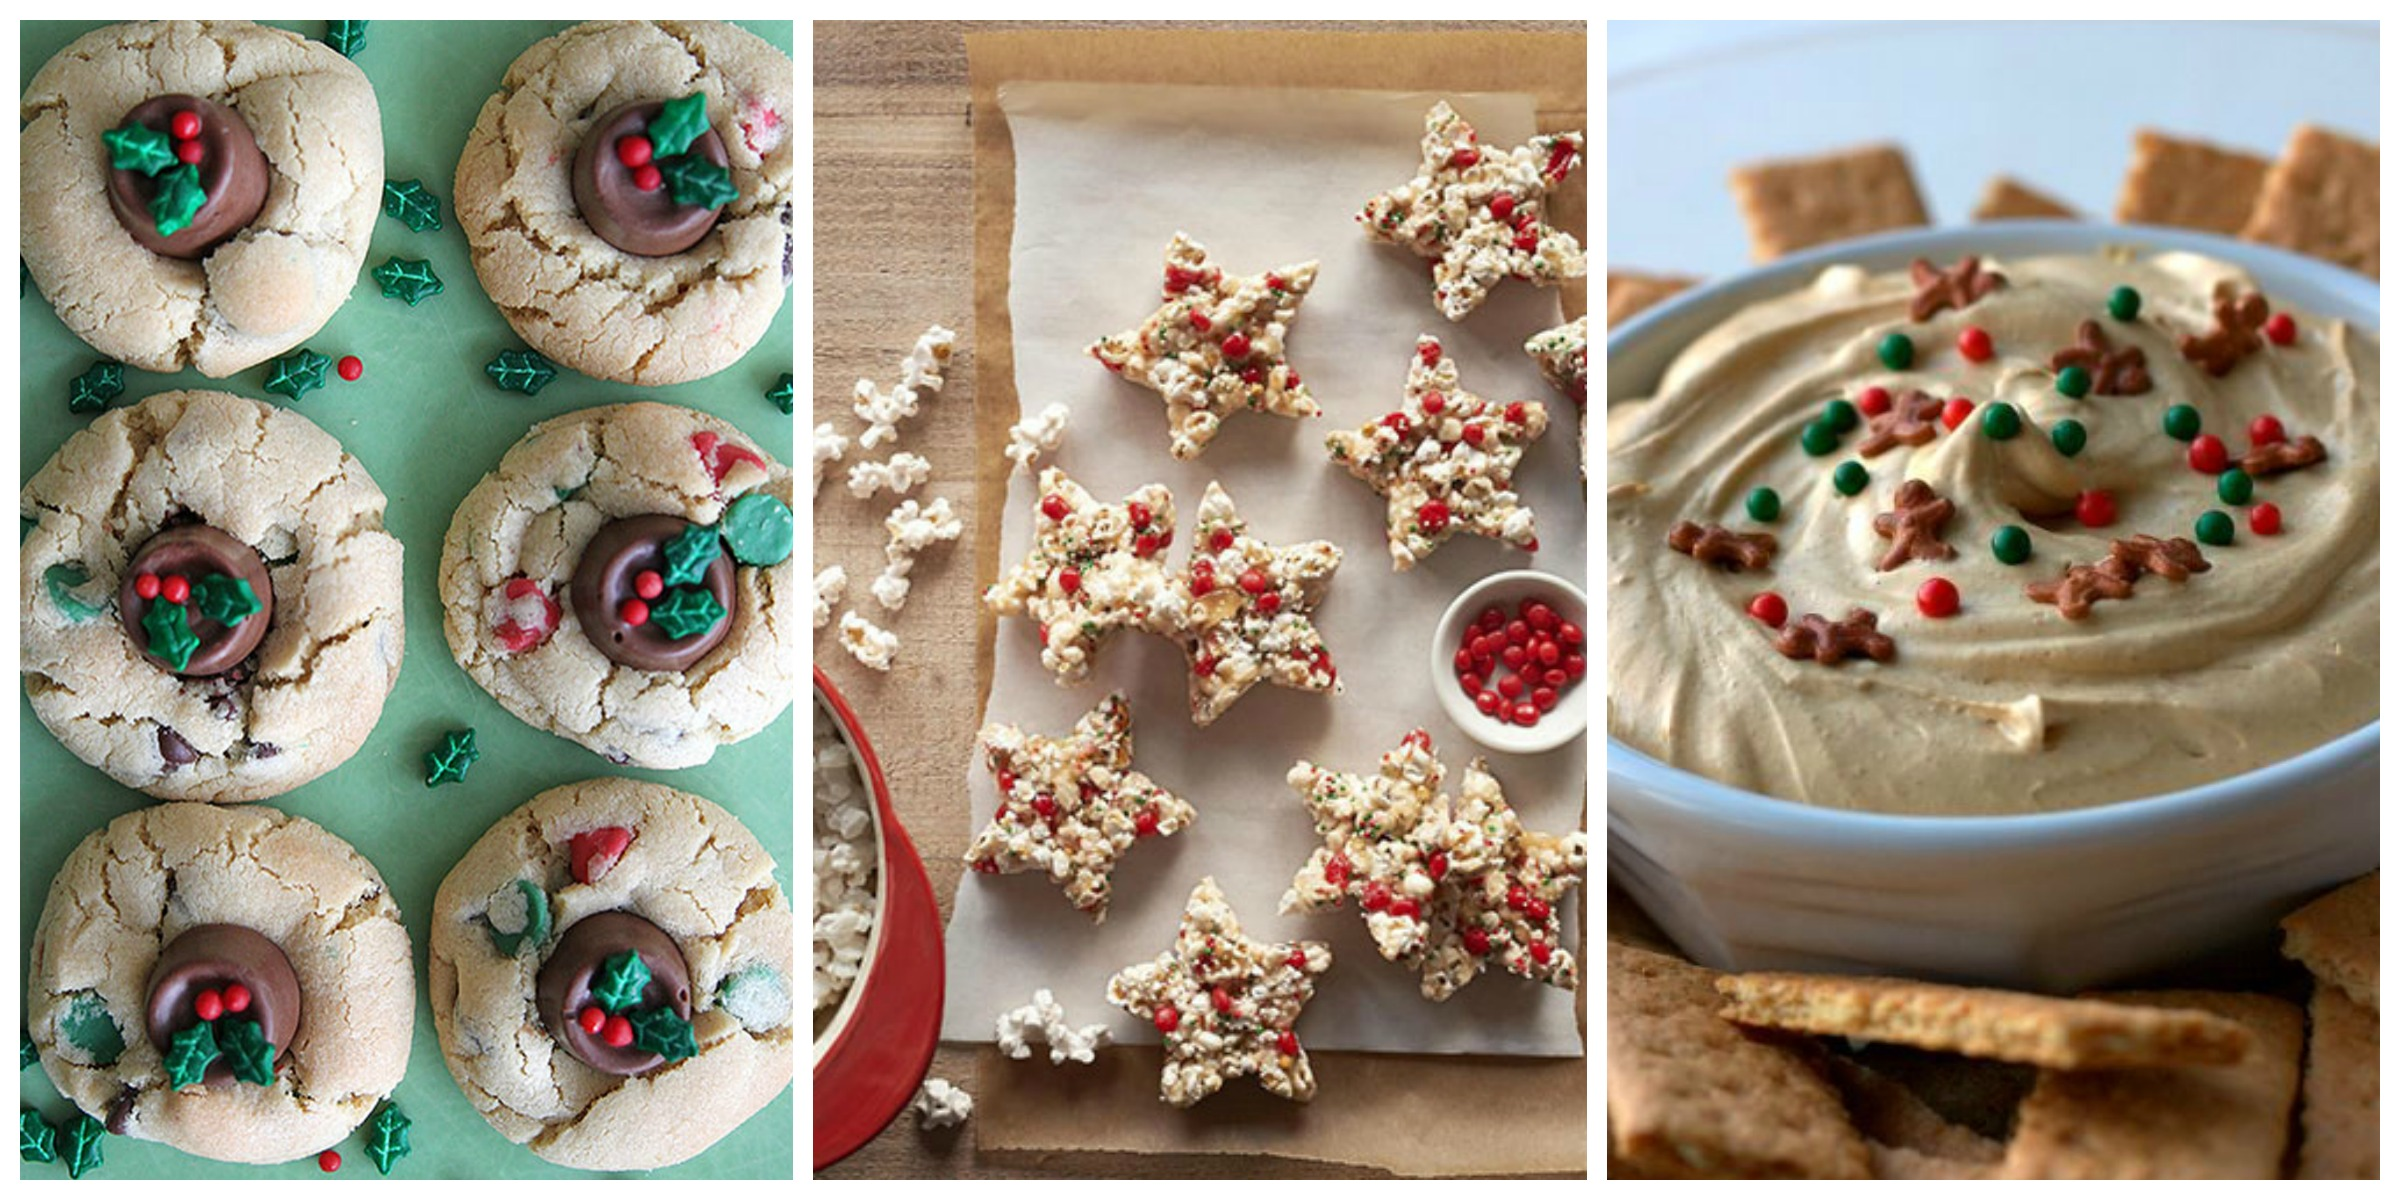 45 Easy Christmas Desserts Best Recipes And Ideas For